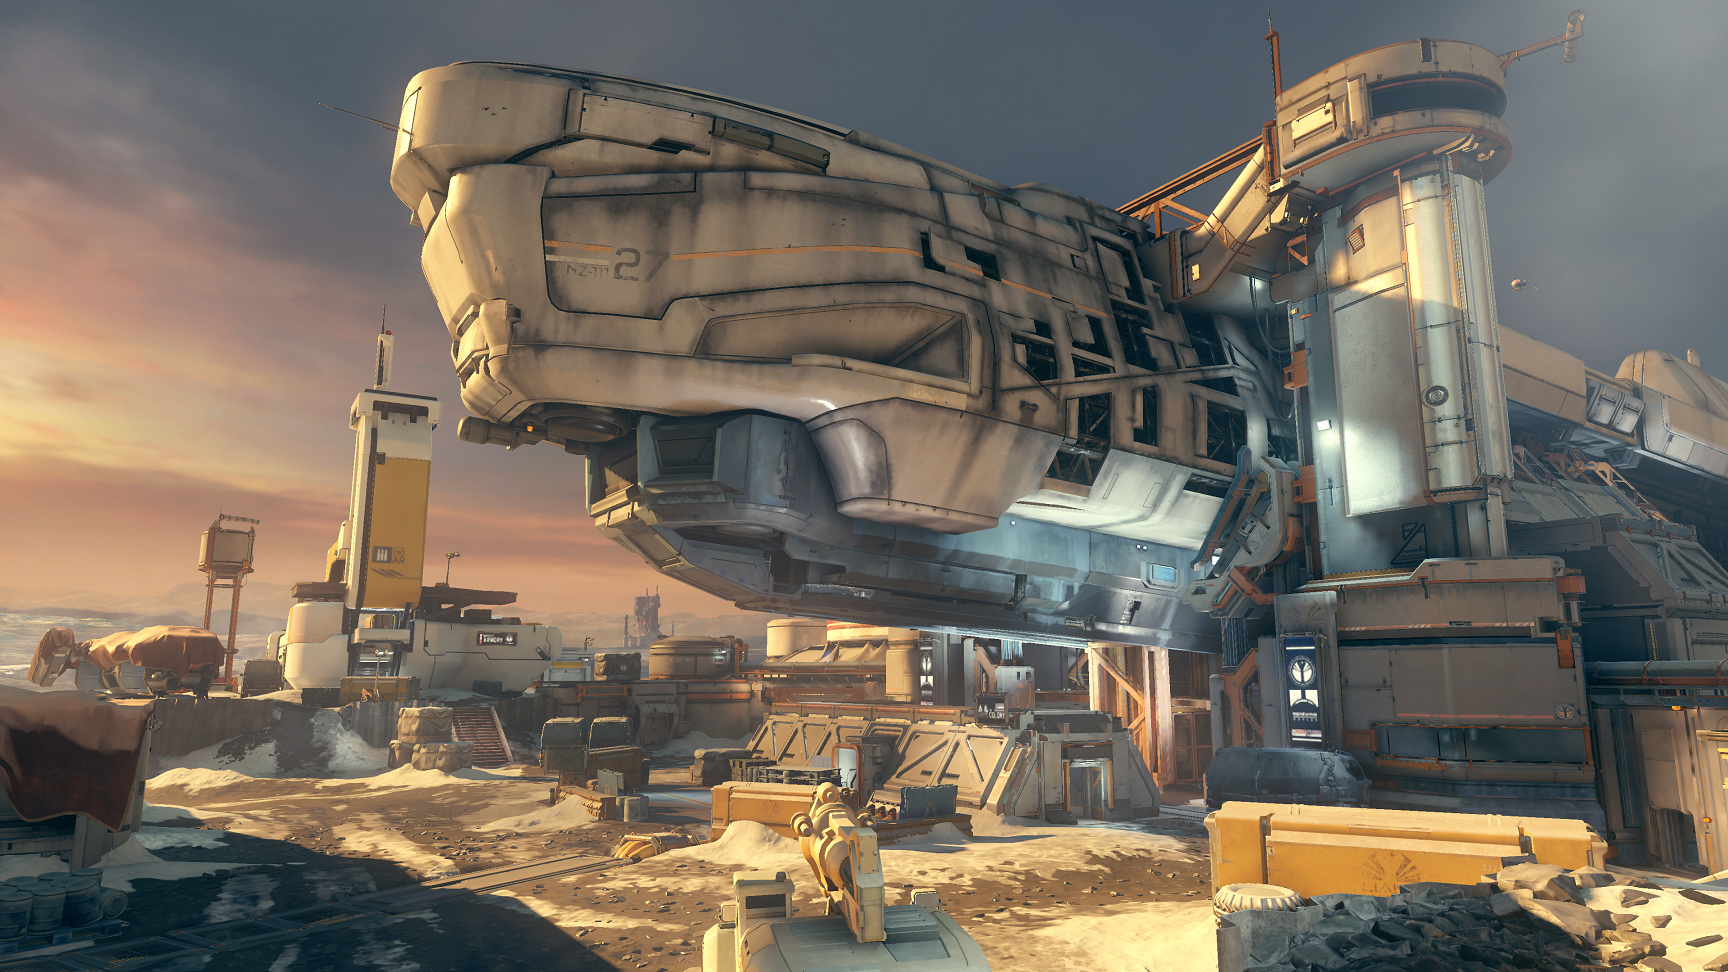 Halo 5 Warzone Firefight Gameplay Shows Ambitious New Multiplayer